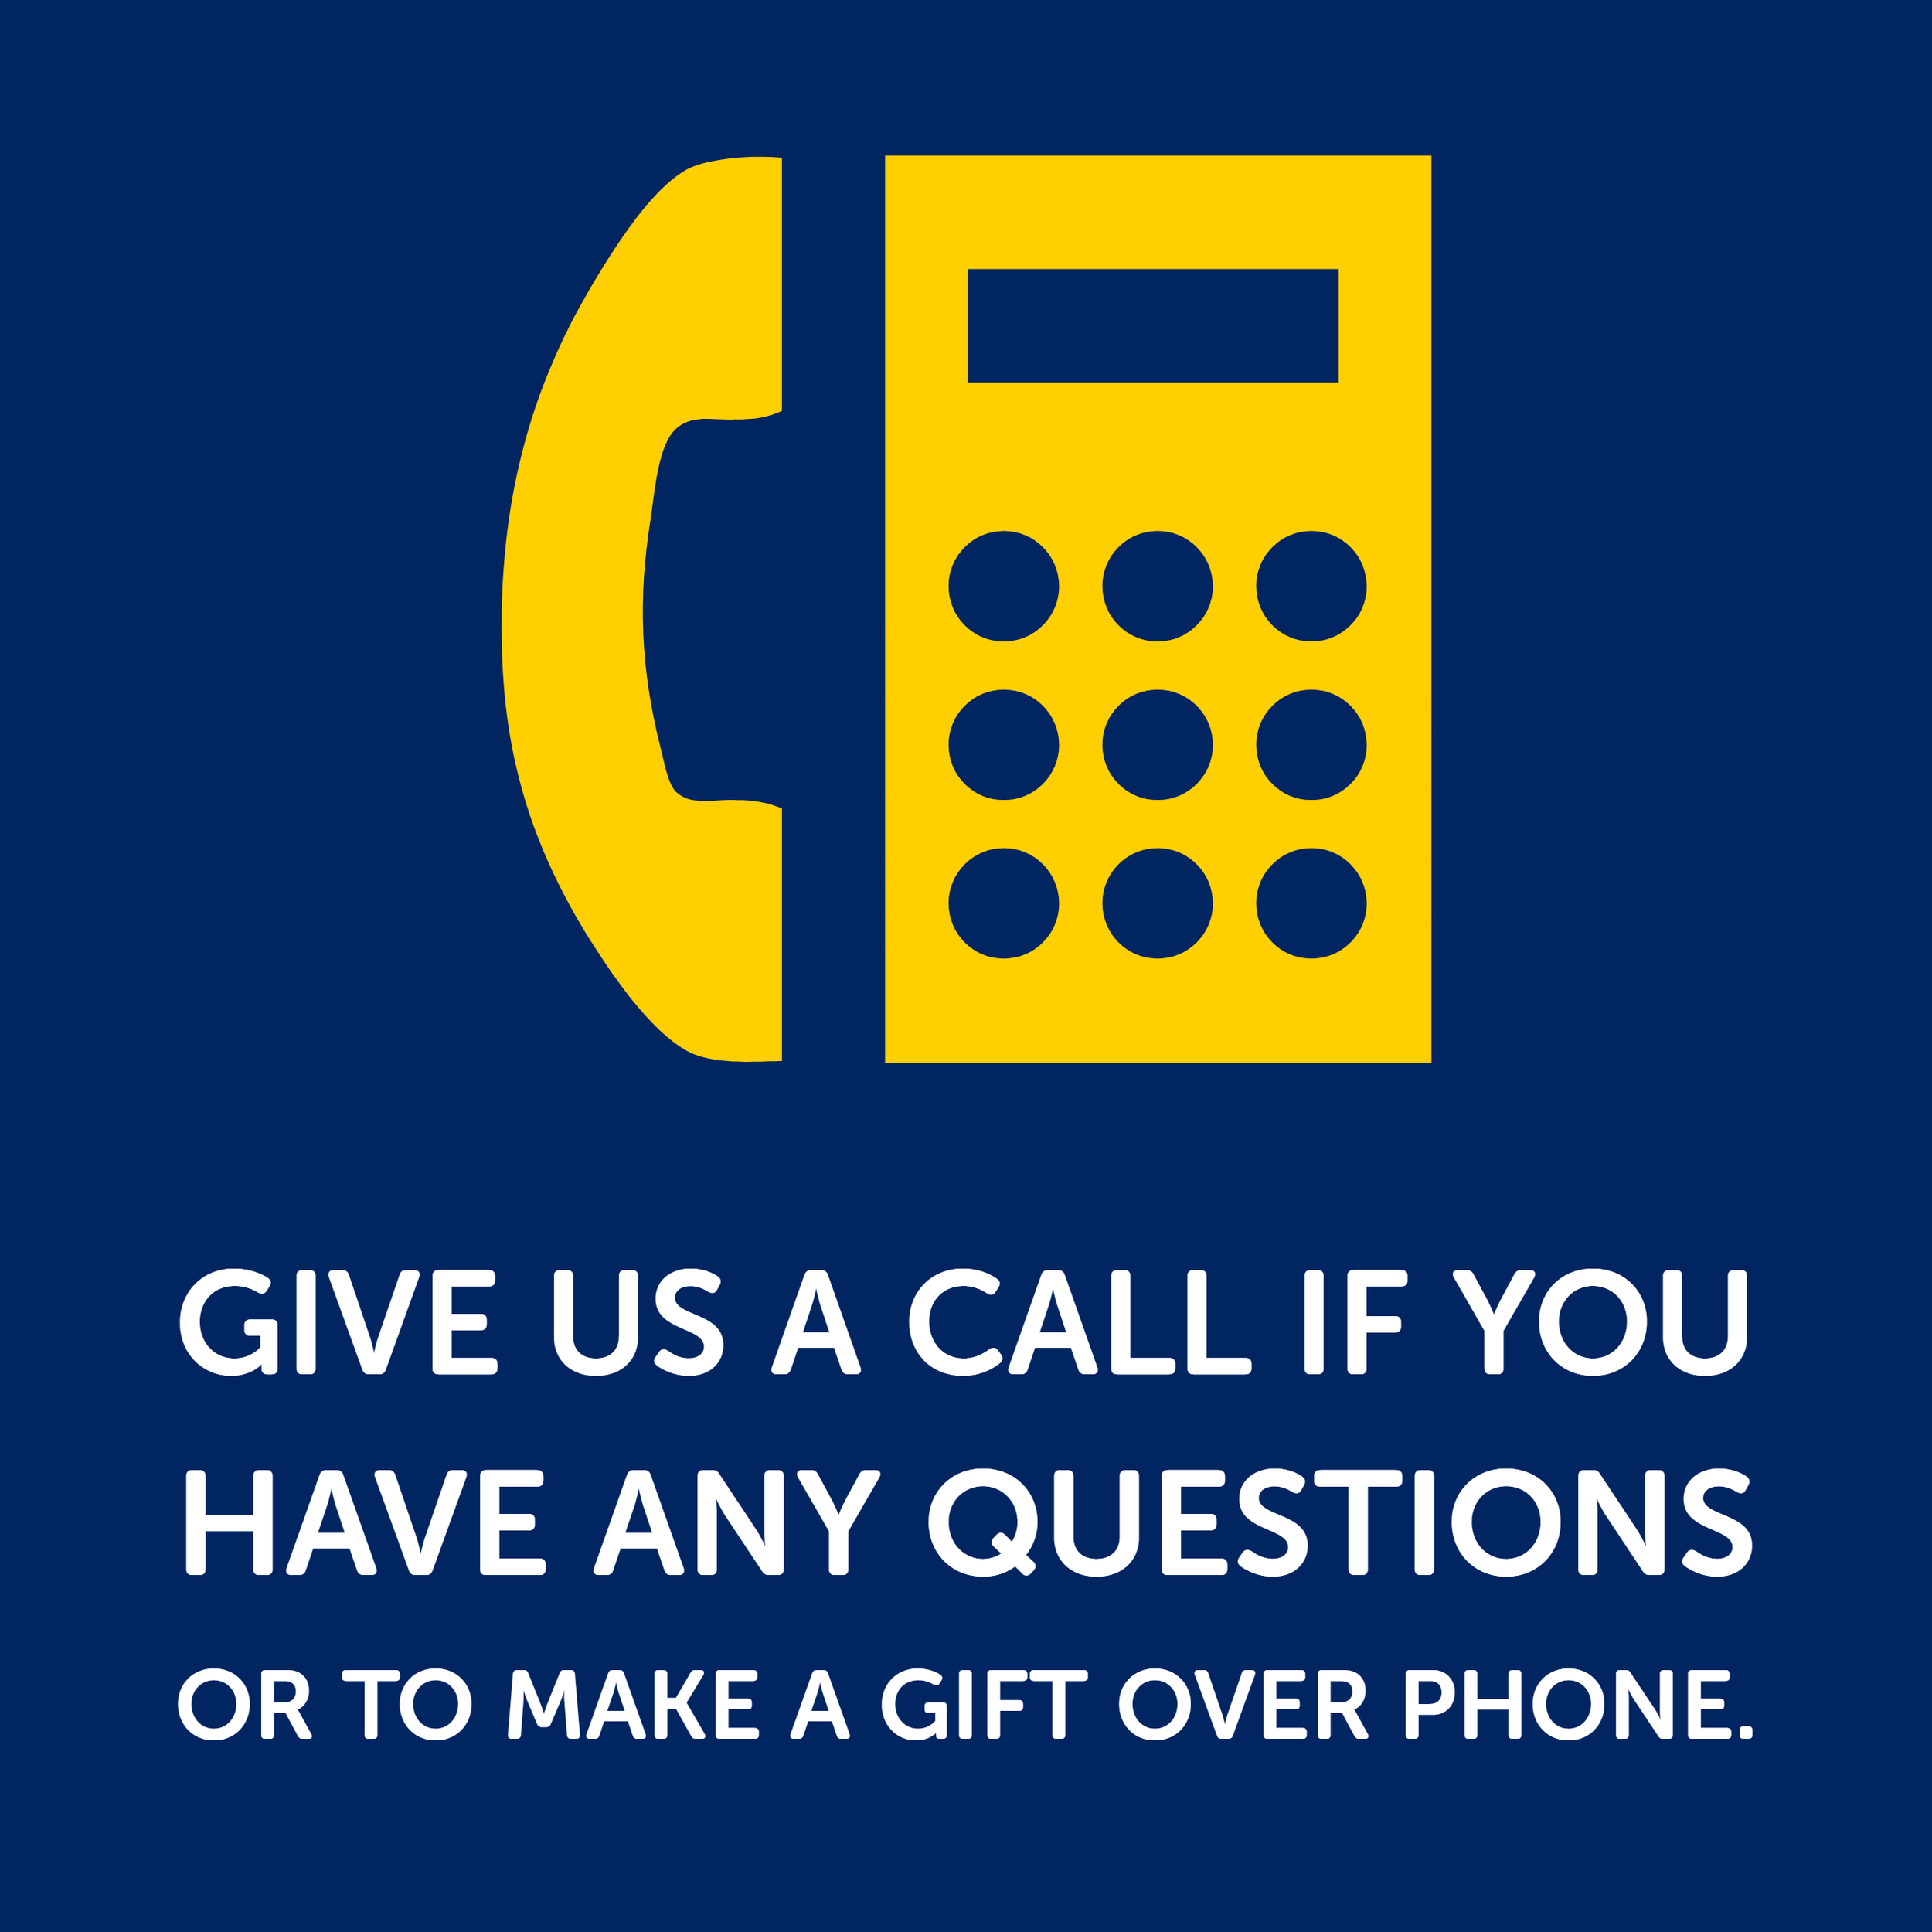 Give us a call if you have any questions or to make a gift over phone.